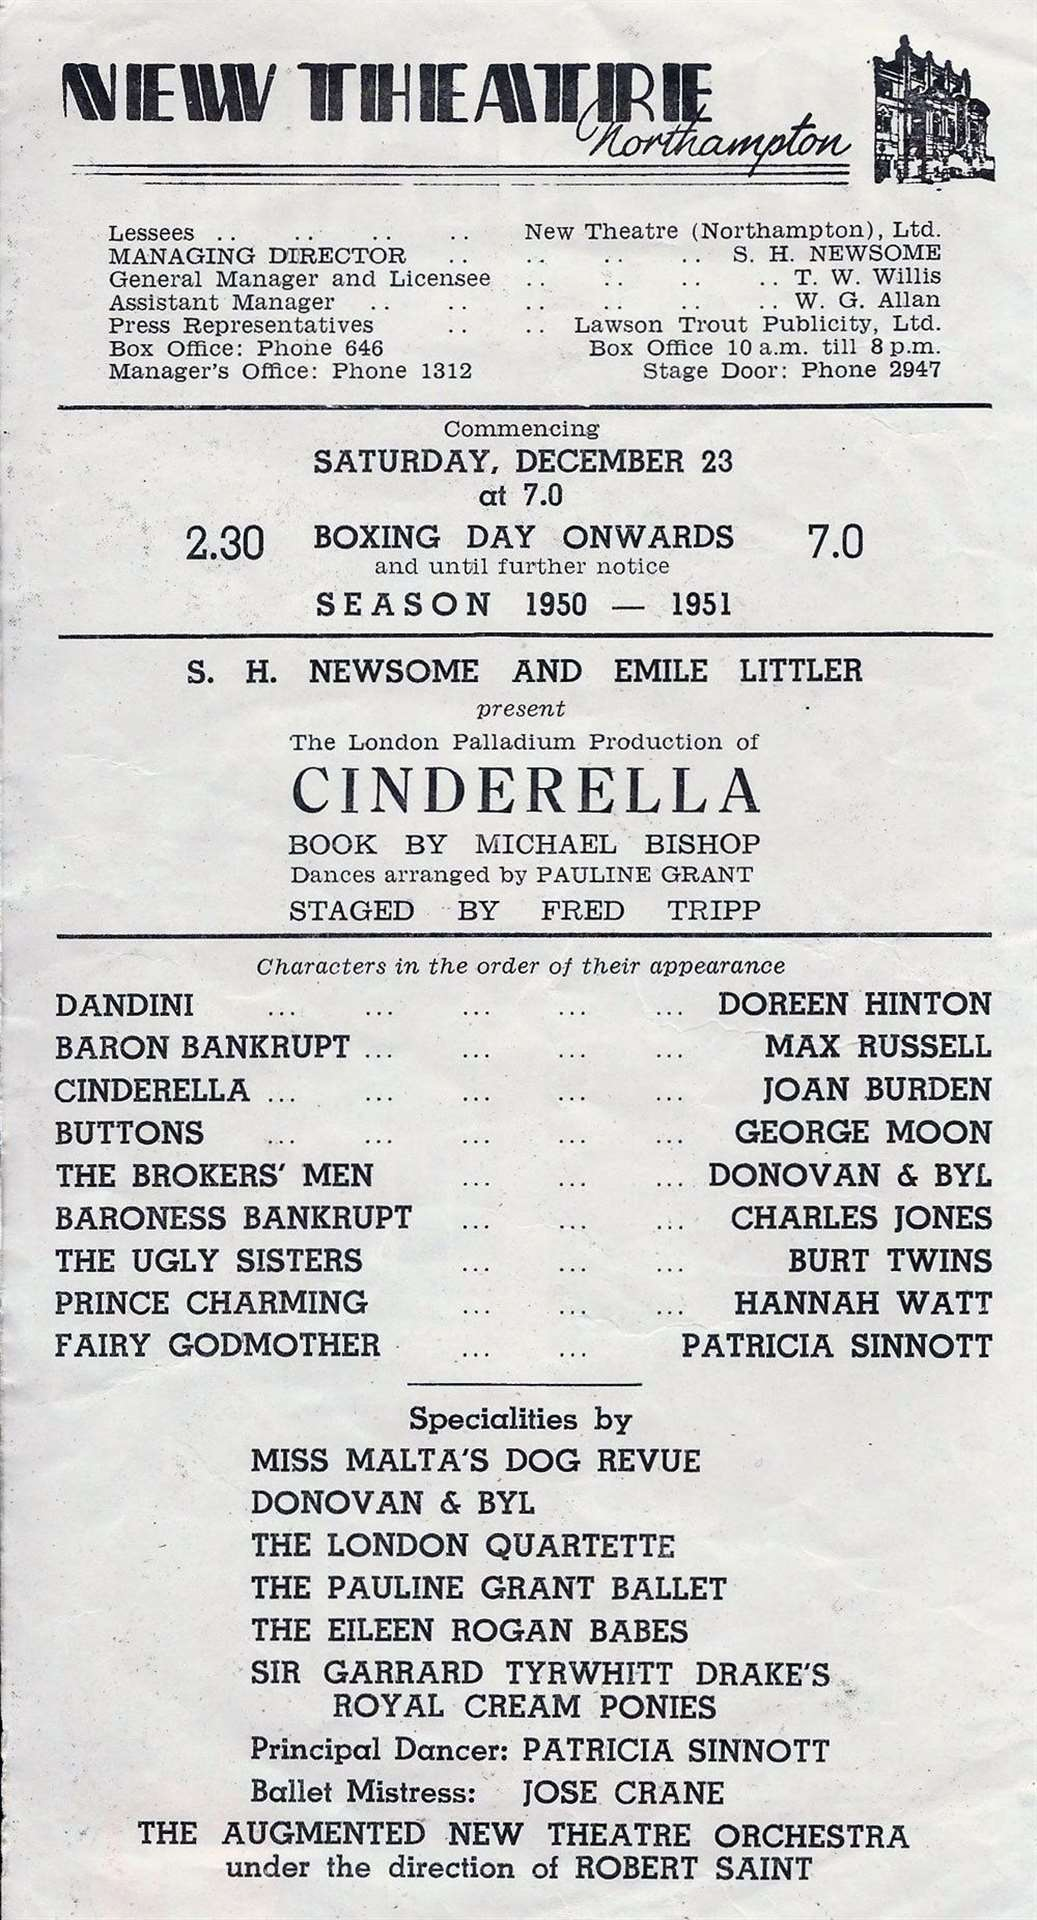 A programme for the Northampton New Theatre's production of Cinderella, with Sir Garrard's ponies on the cast list